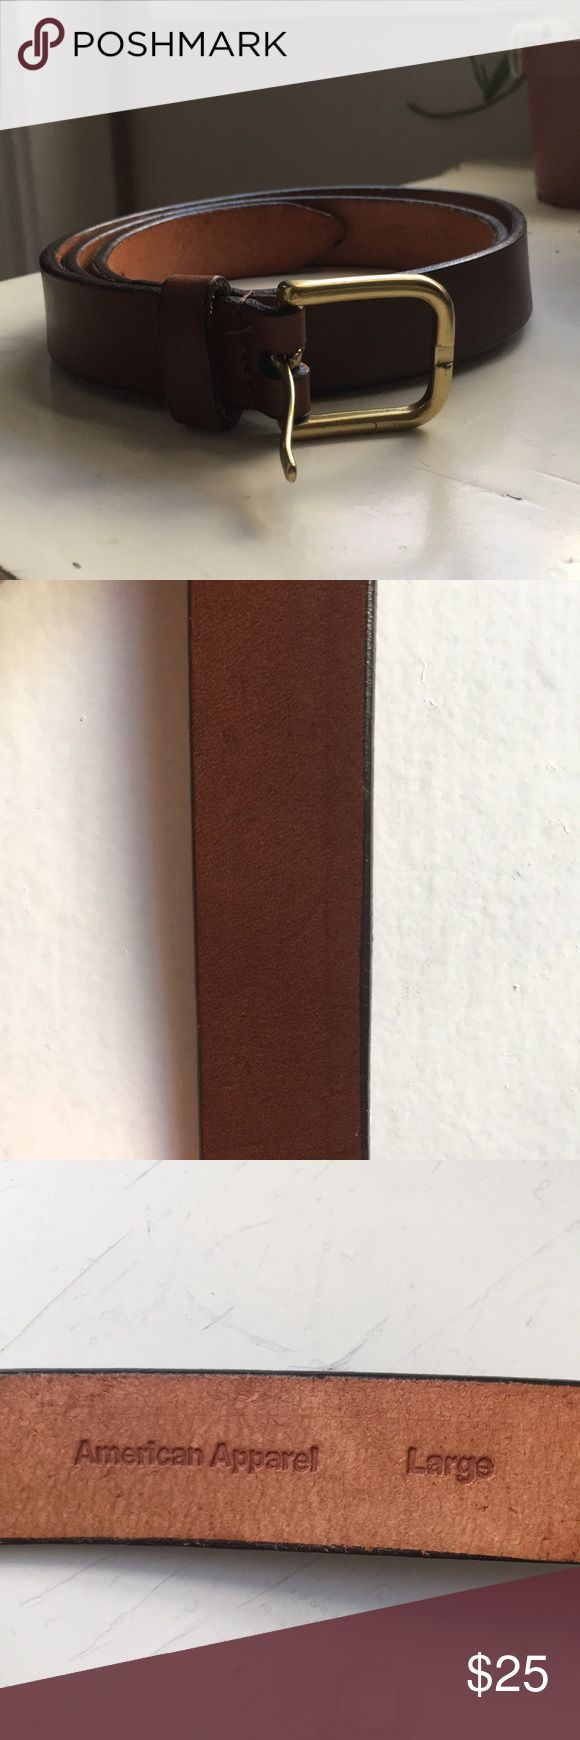 American Apparel Leather Belt American Apparel Brown Leather Belt. Approximately 40in in length and 1in in width. Gold belt buckle. New Without Tags American Apparel Accessories Belts